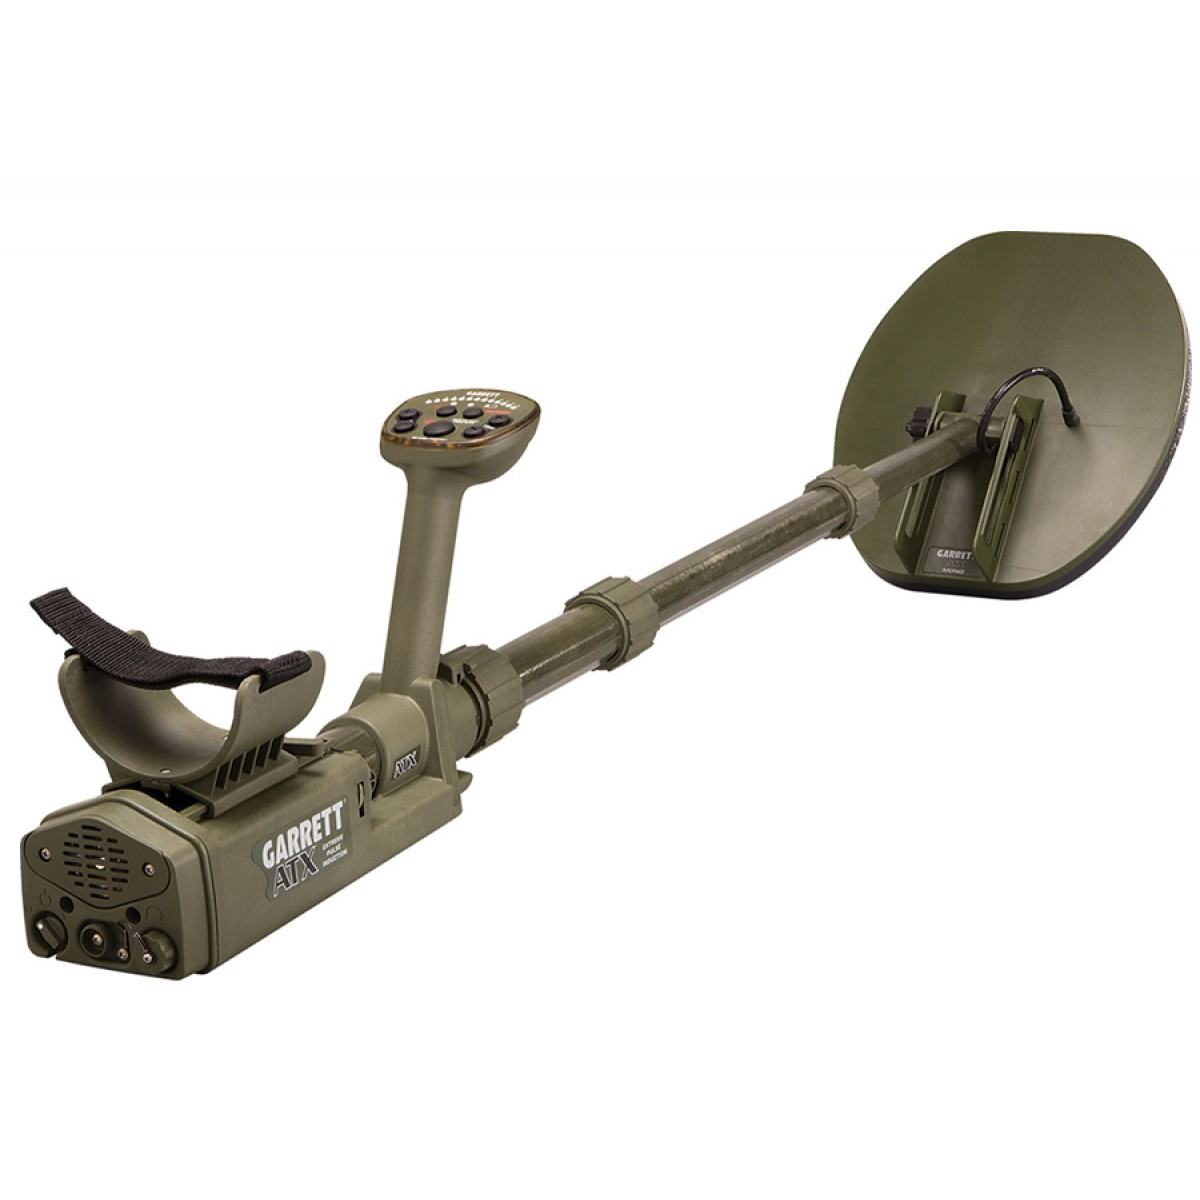 Garrett Atx Extreme Pi 11x13 Mono Coil Metal Detector Kellyco Pulse Induction Circuit As Well